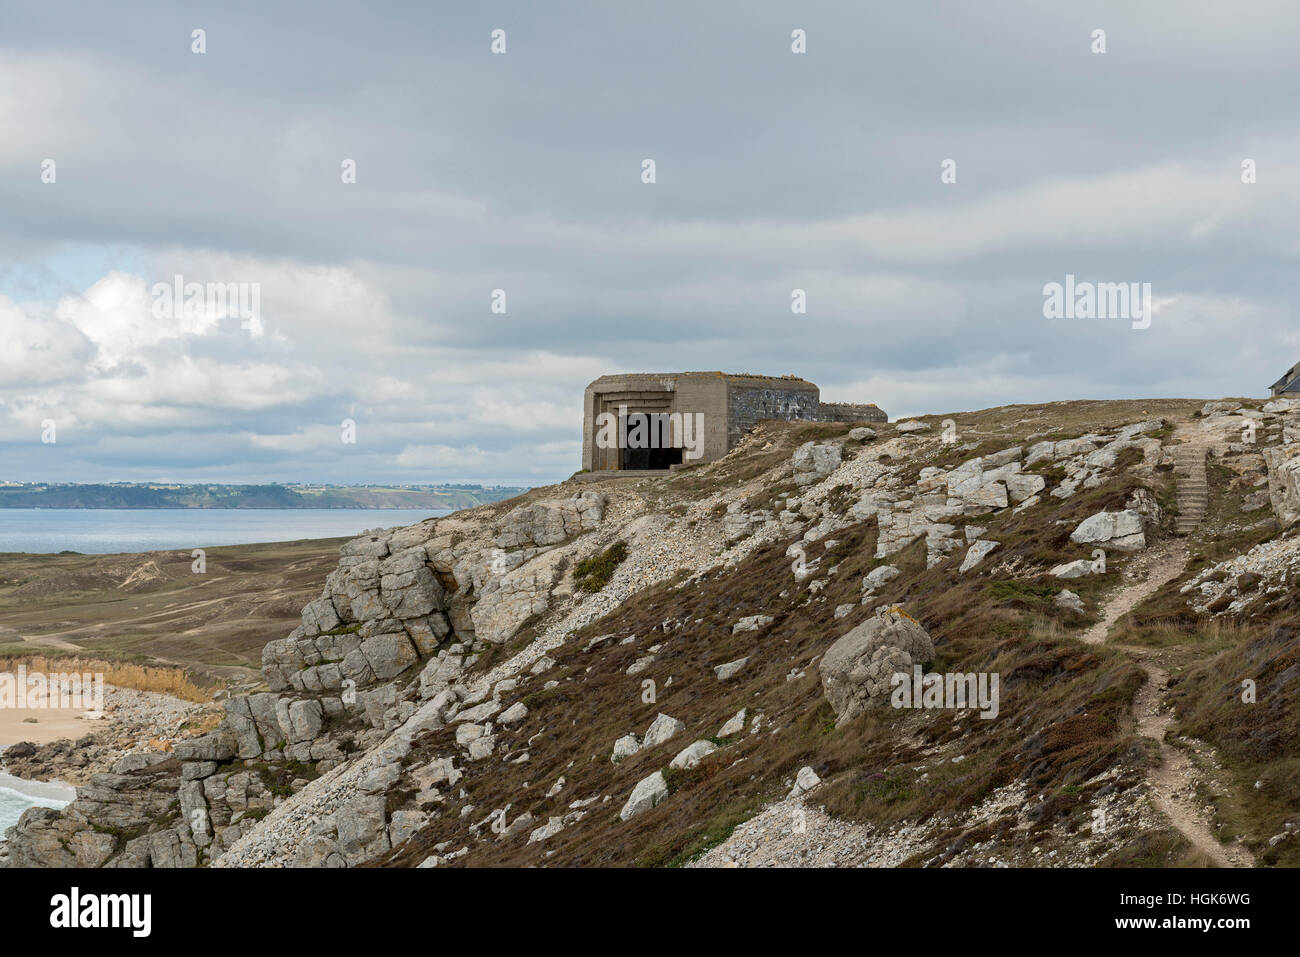 German World War II Bunkers at Crozon, Brittany, France - Stock Image